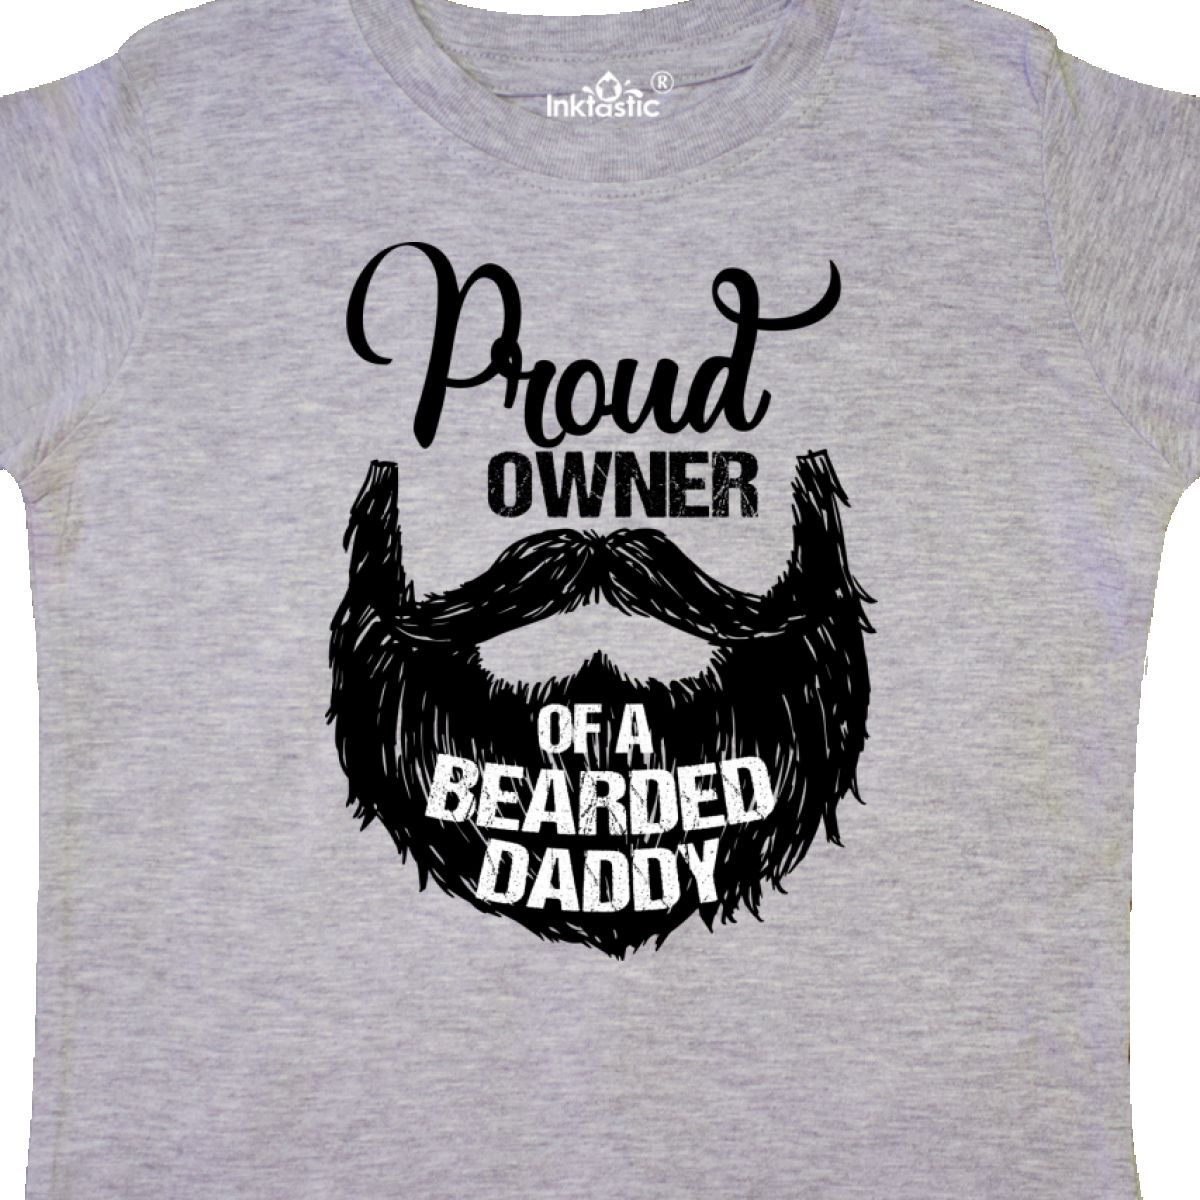 Inktastic-Proud-Owner-Of-A-Bearded-Daddy-Toddler-T-Shirt-Men-Beards-Tattoos-Baby thumbnail 4